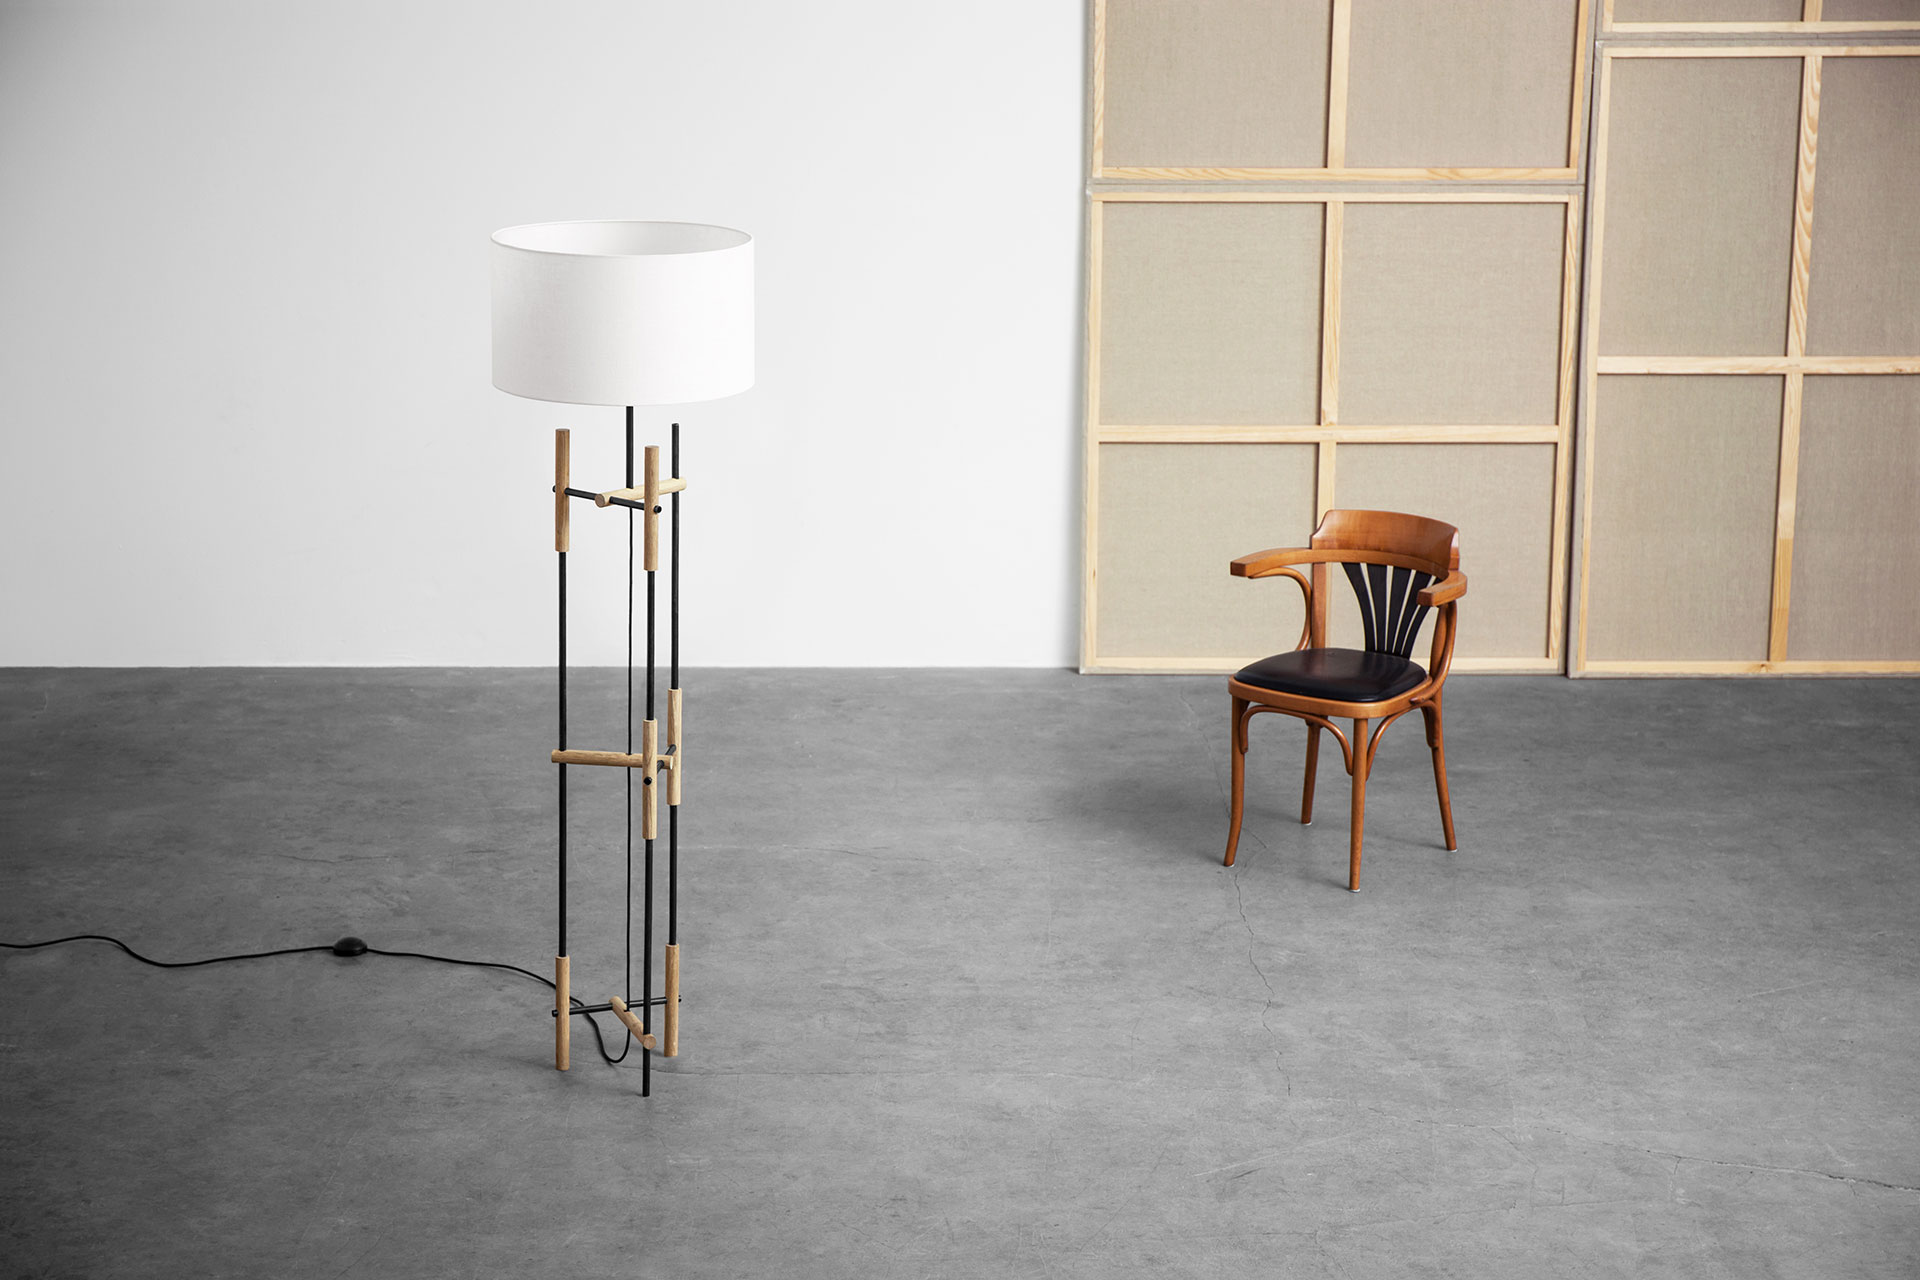 Contemporary design floor lamp with white shade in loft